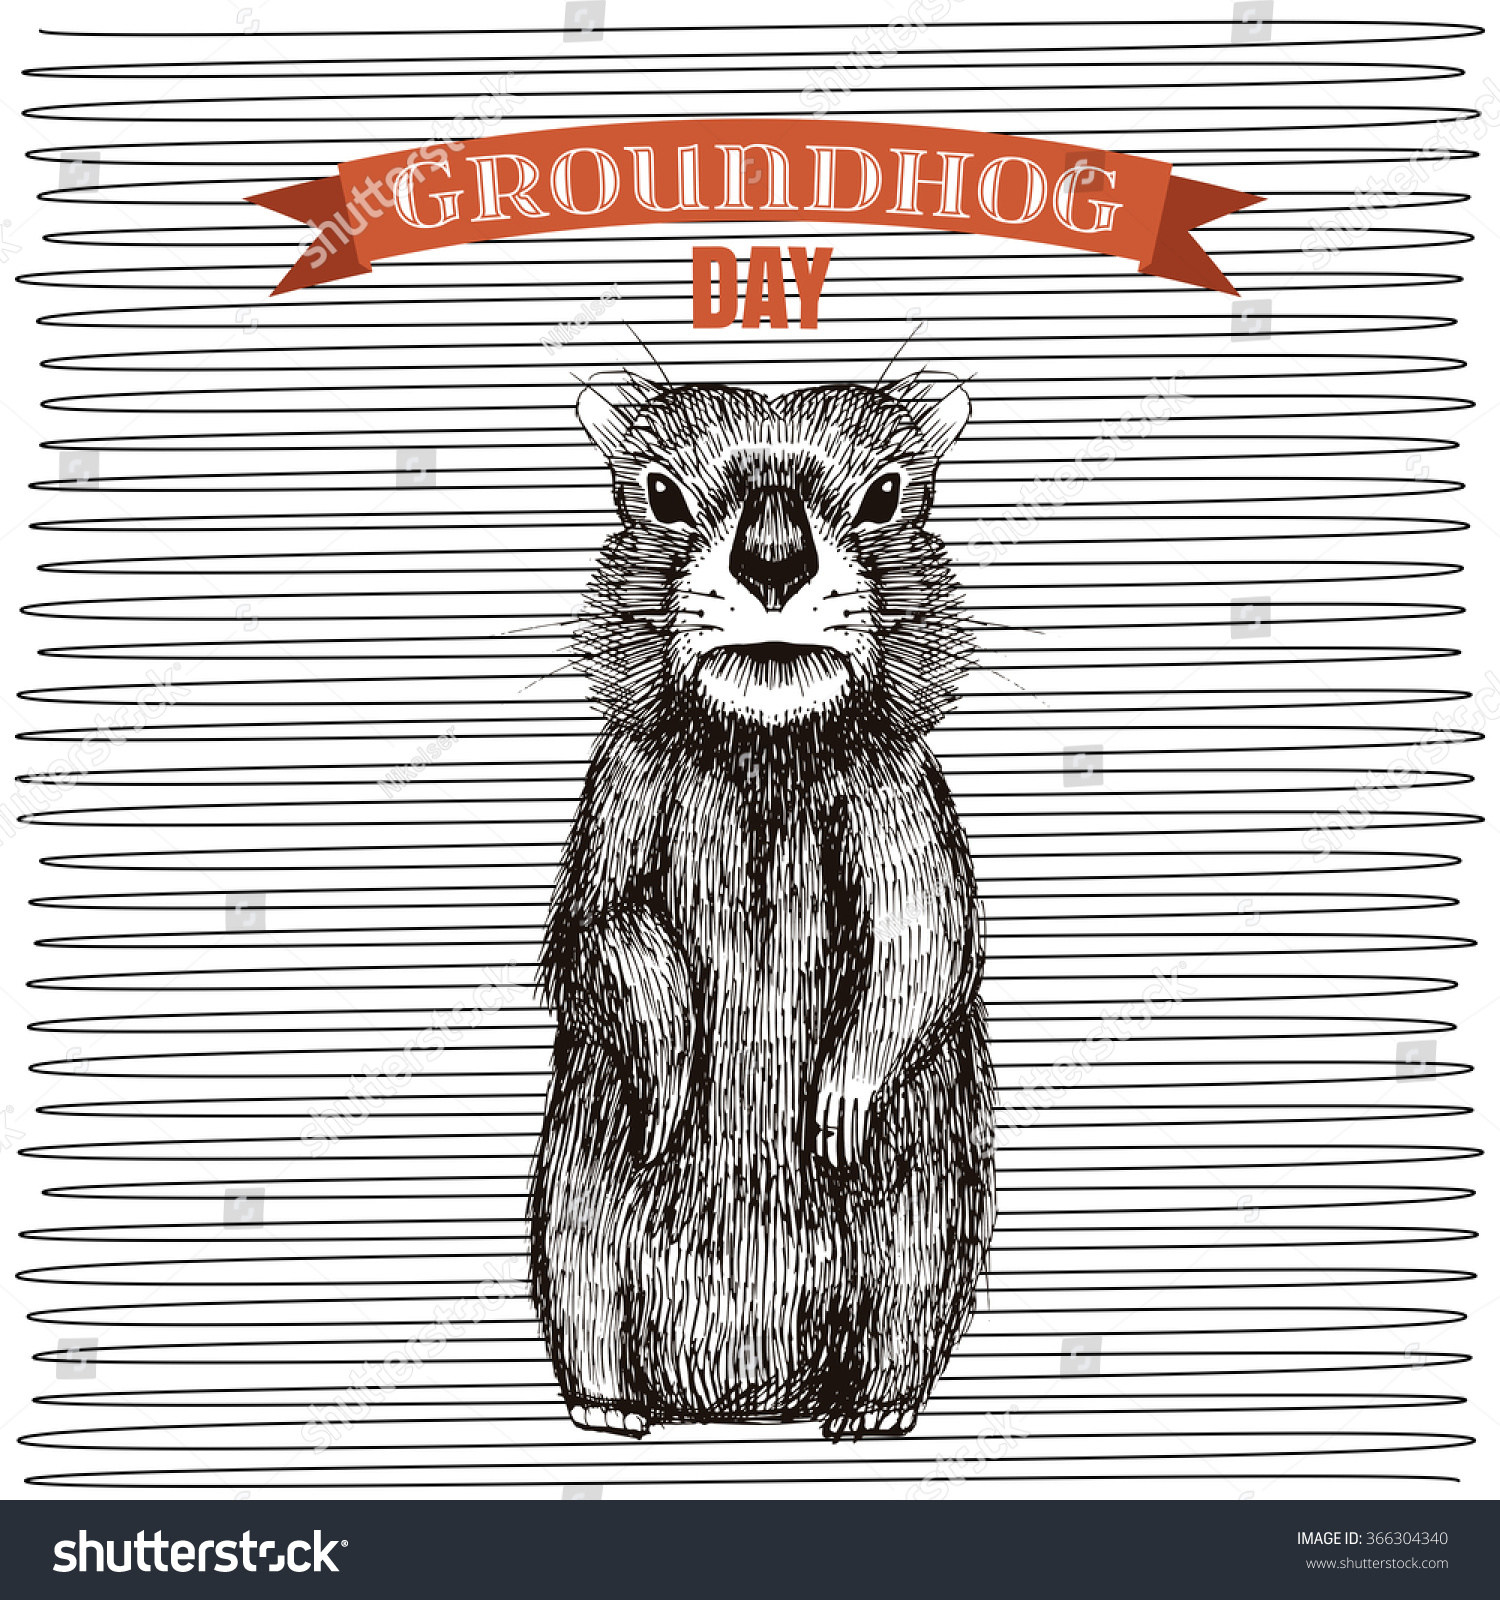 happy groundhog day design cute hand stock vector 366304340